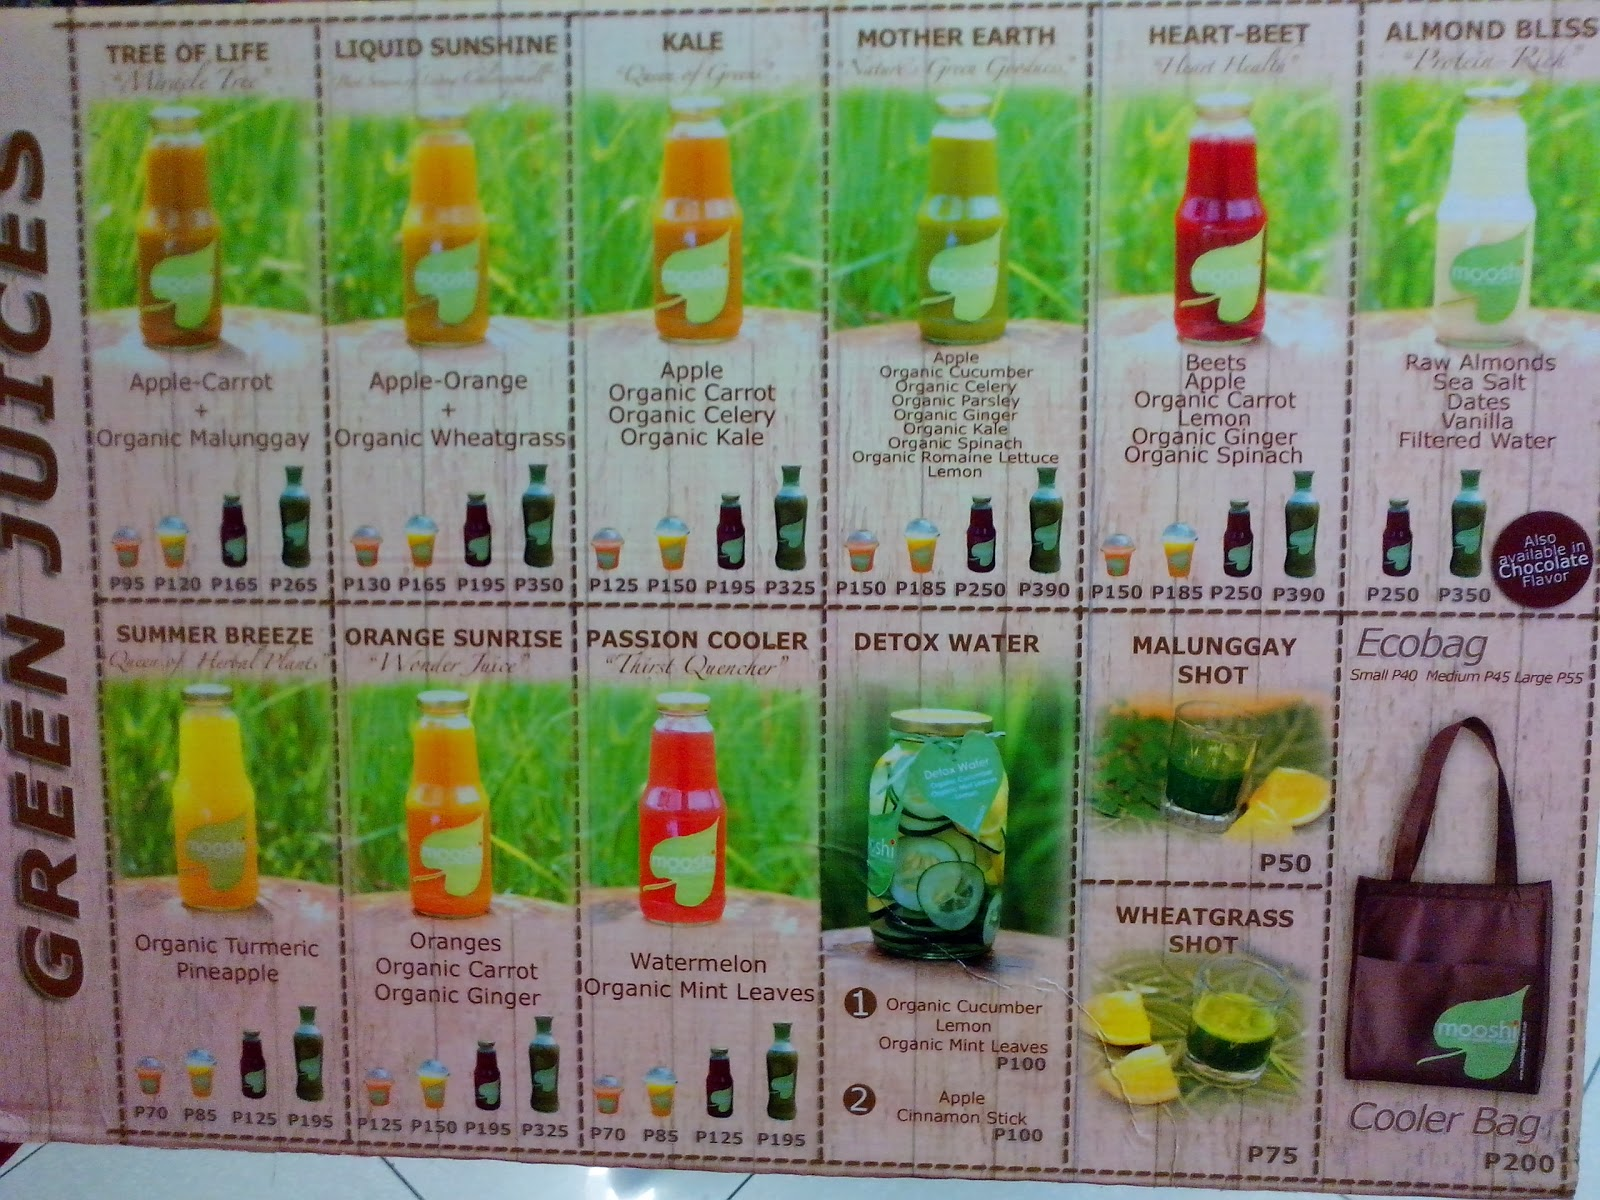 #032eatdrink, food, clean drink, detoxify cebu, green juices, smoothies,  Mooshi Green Smoothie + Juice Bar Menu